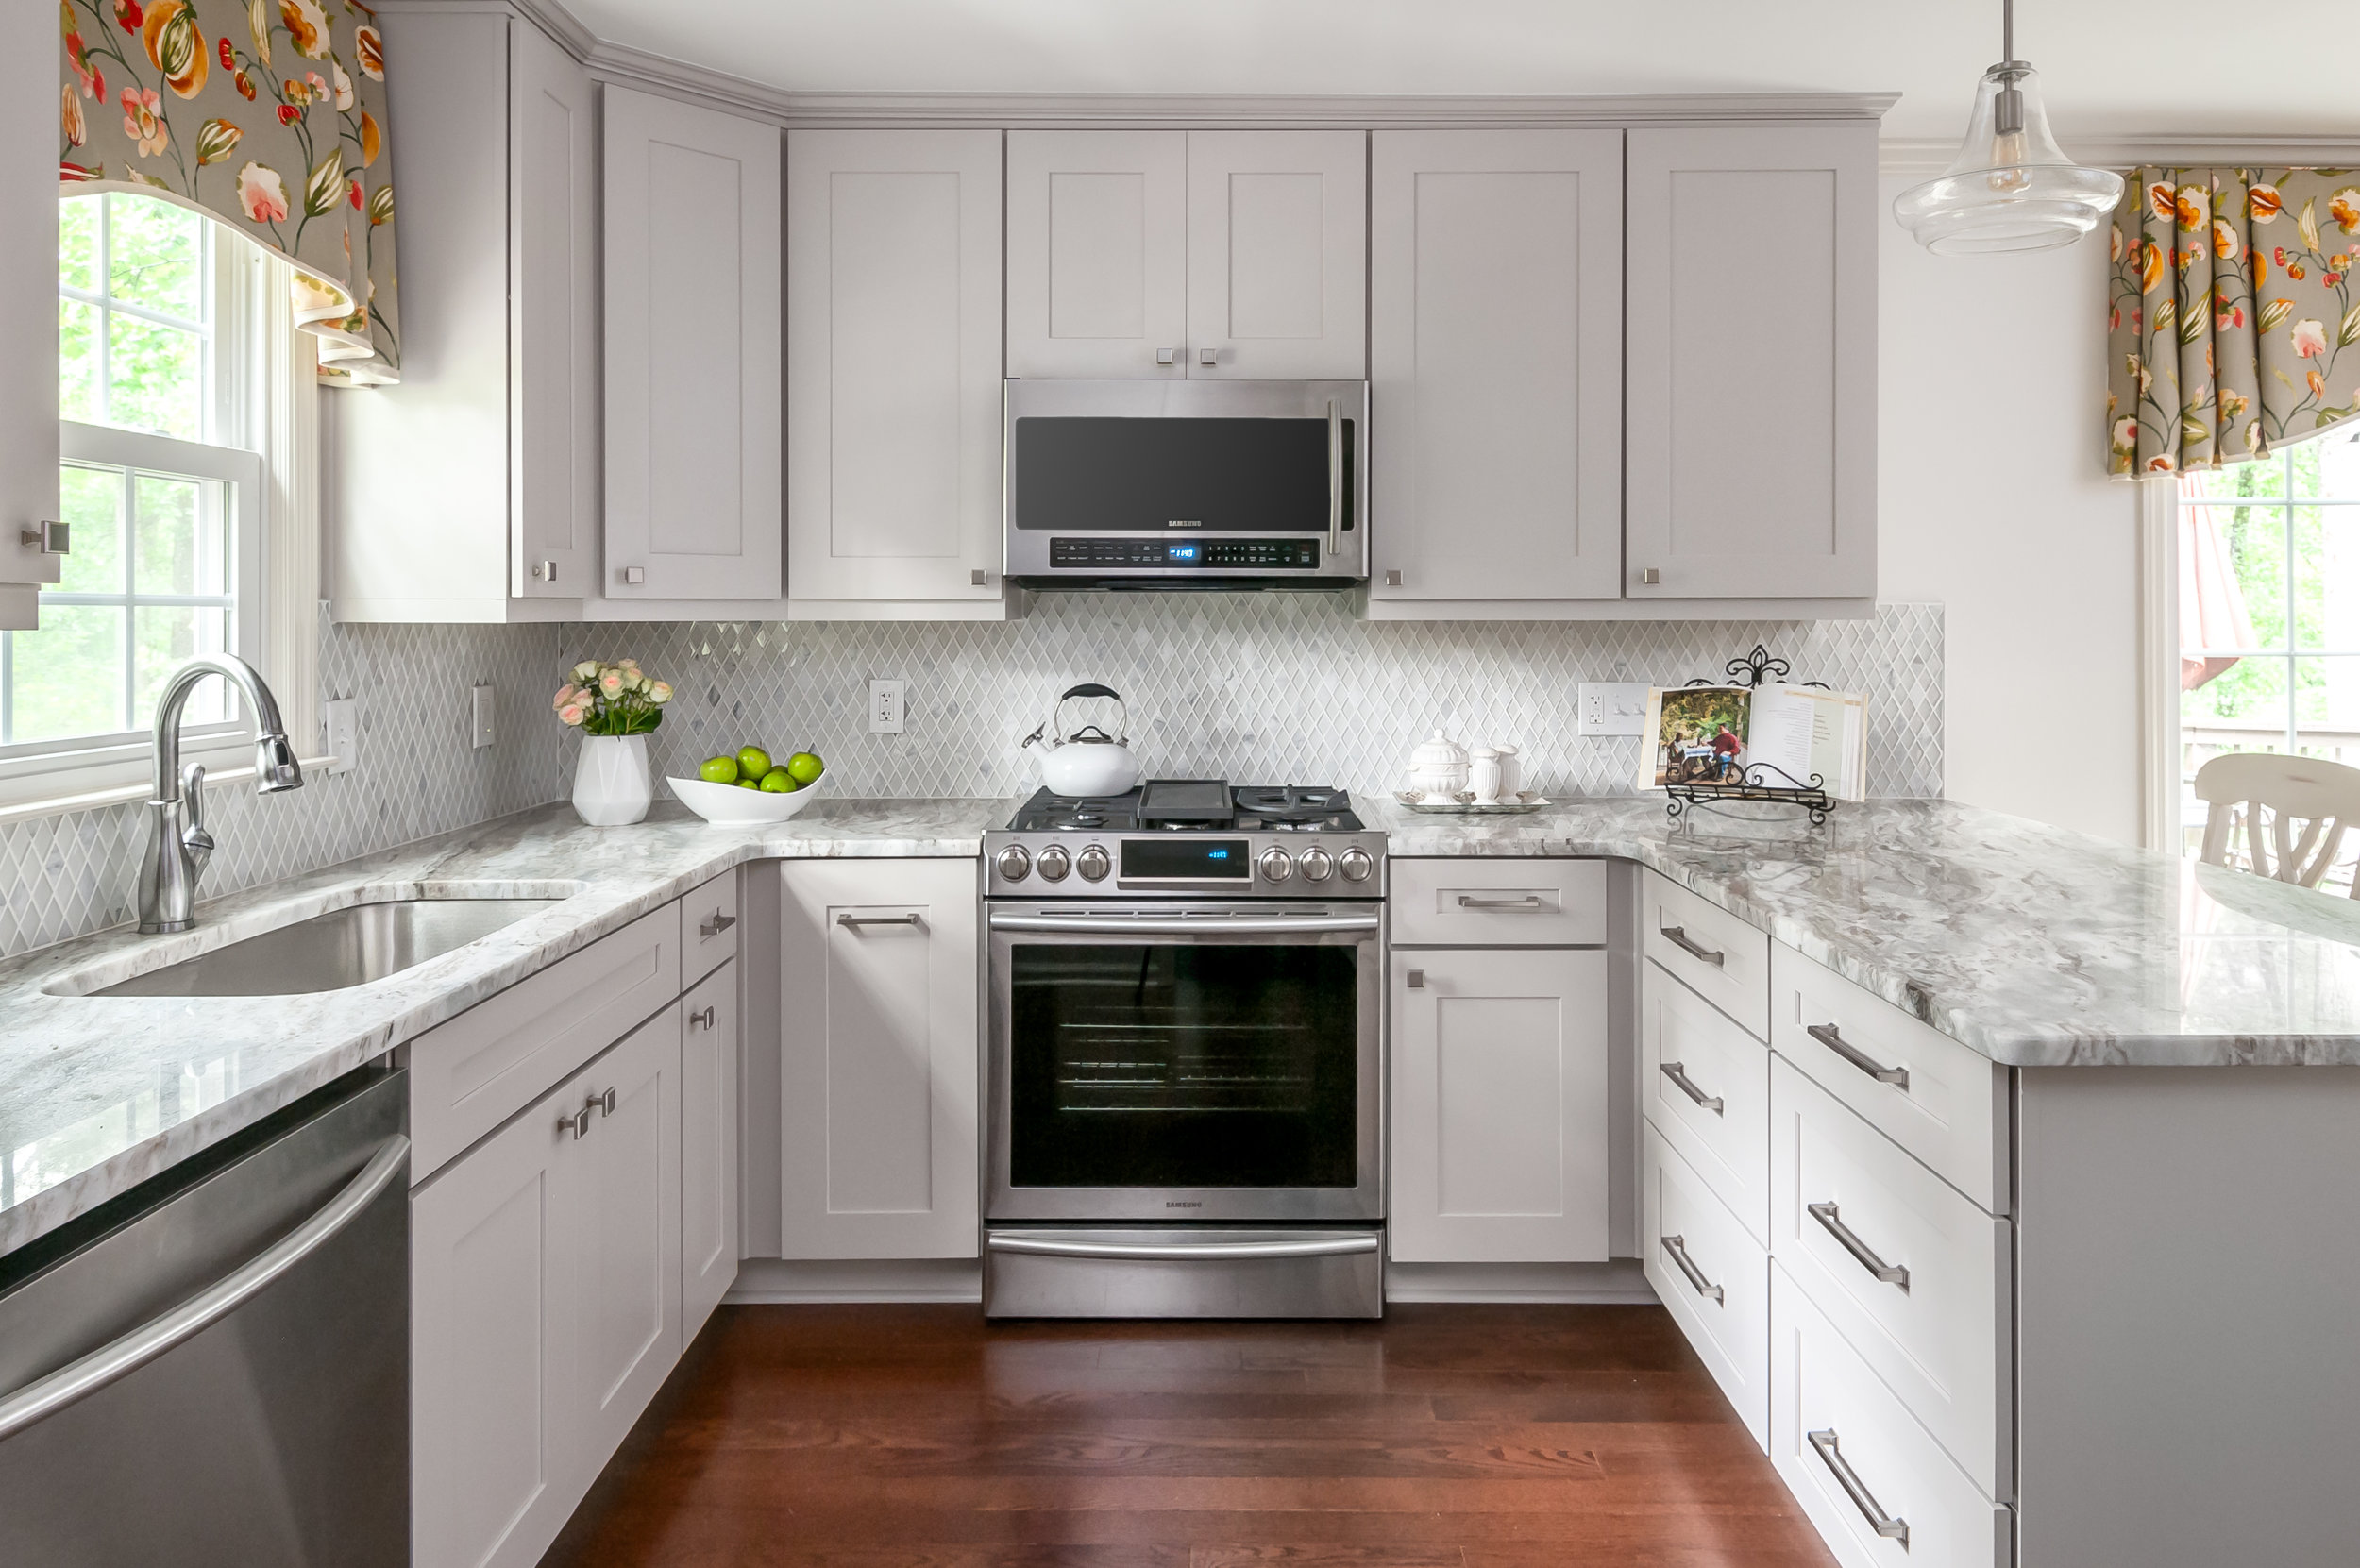 New appliances and willow gray cabinetry create a clean feel to the heart of the kitchen. The hardwood floor from the adjoining family room was extended into the kitchen.